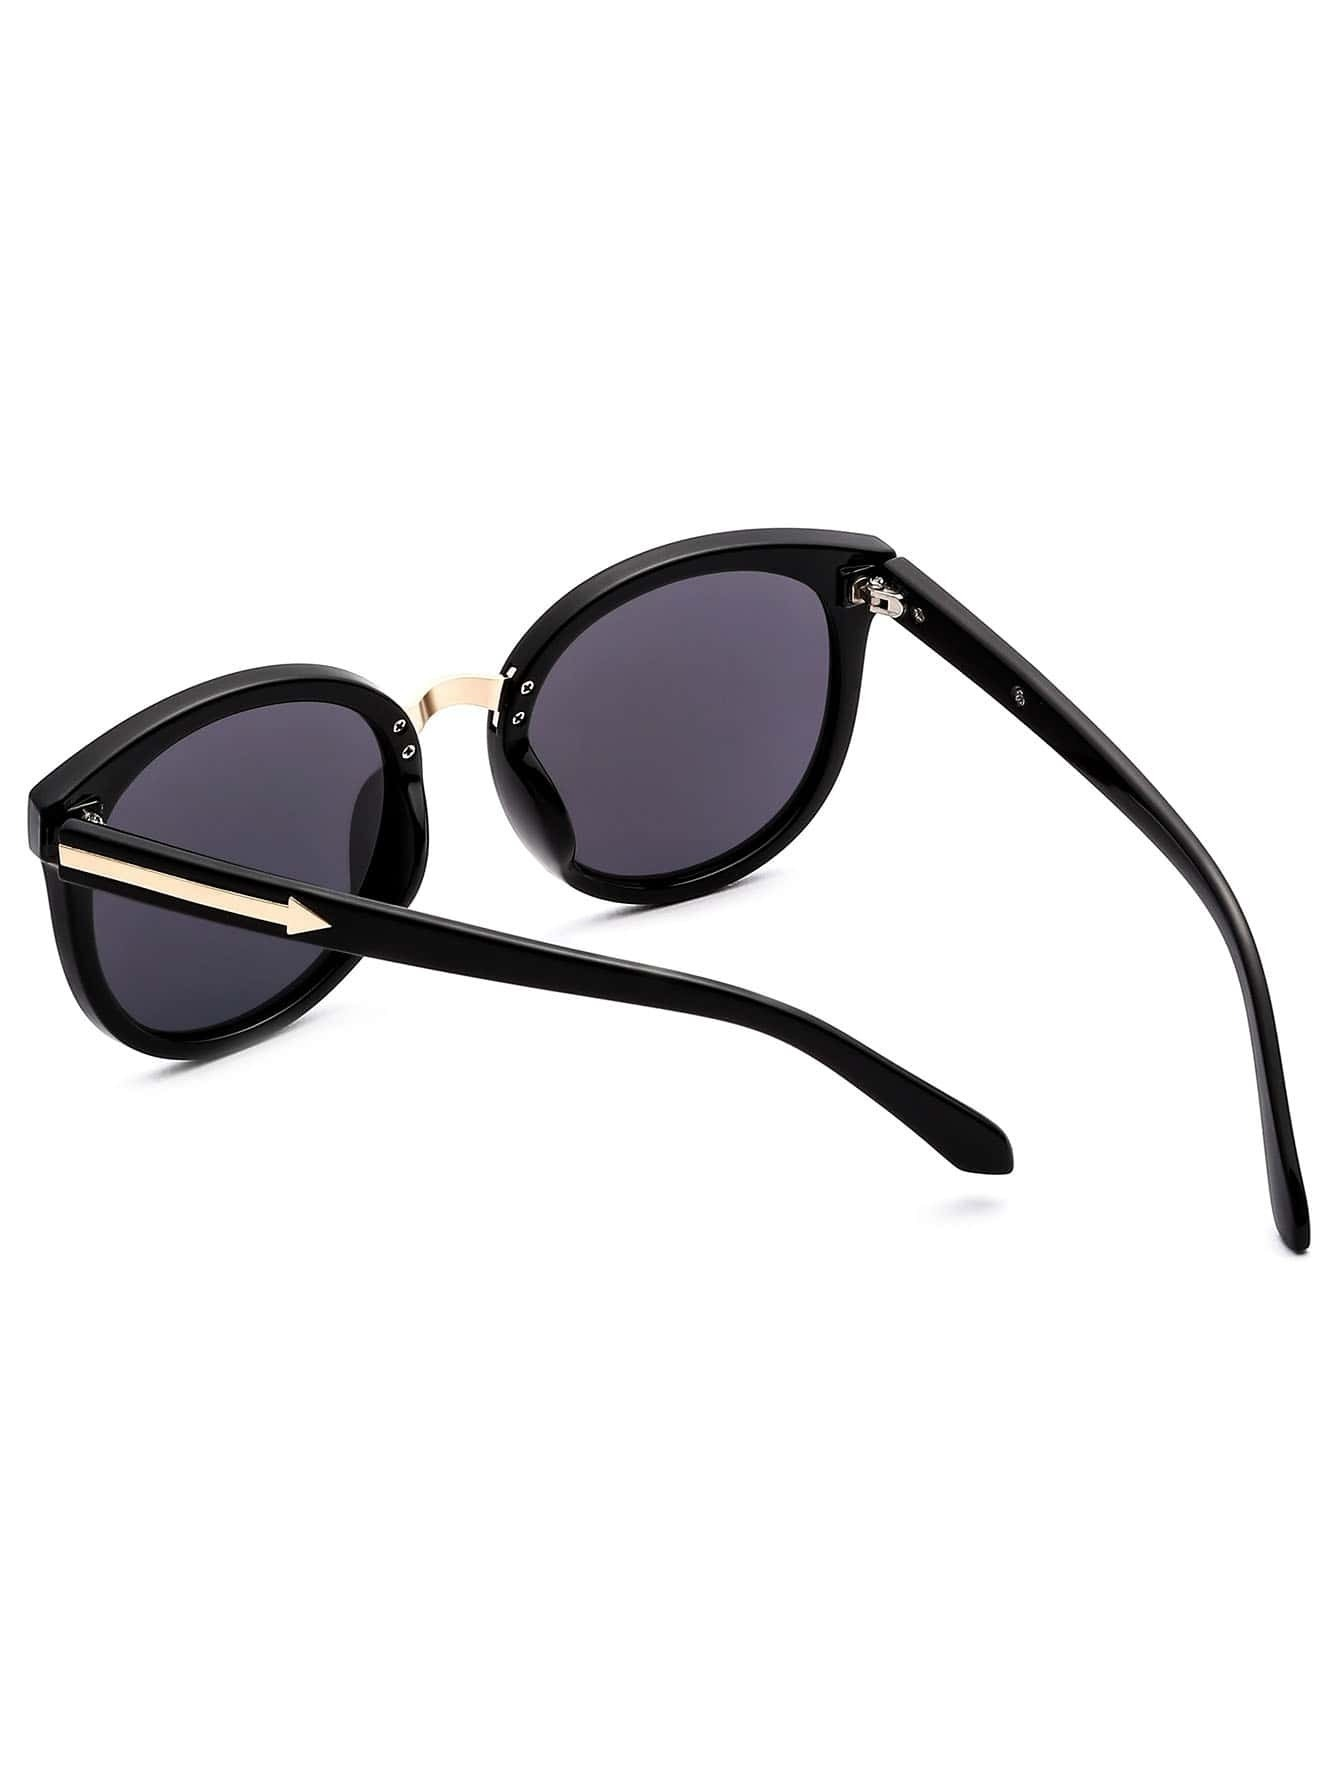 Black Frame Grey Lens Cat Eye Sunglasses